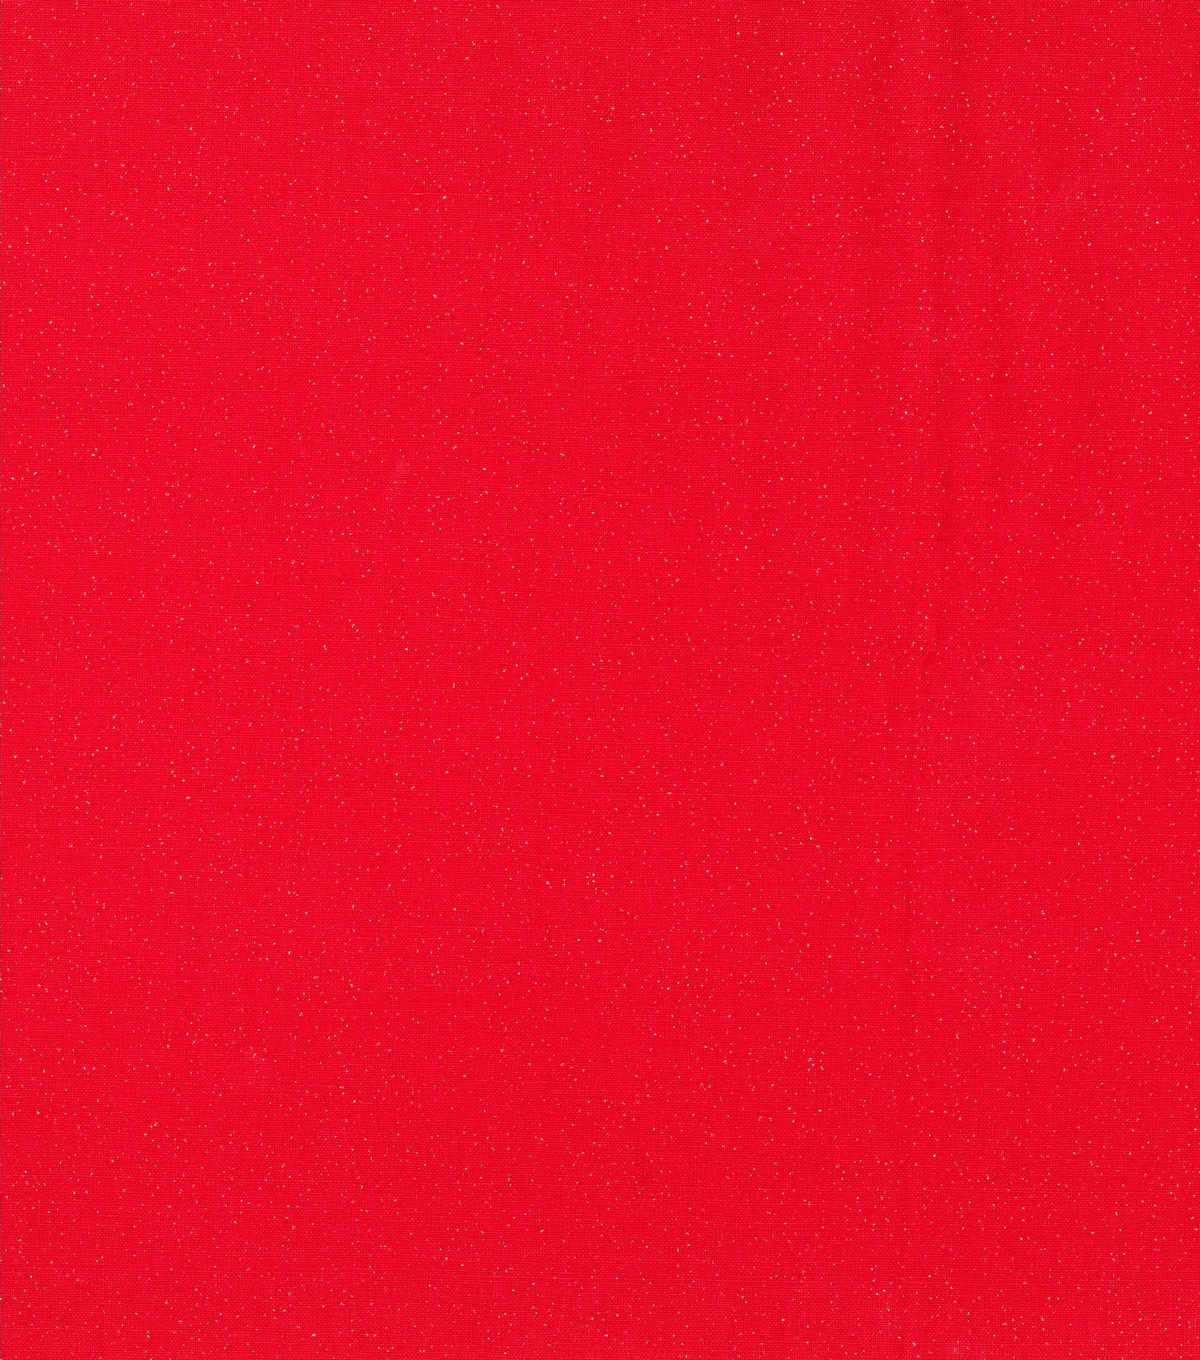 Keepsake Calico Cotton Fabric-Silver Glitter on Red